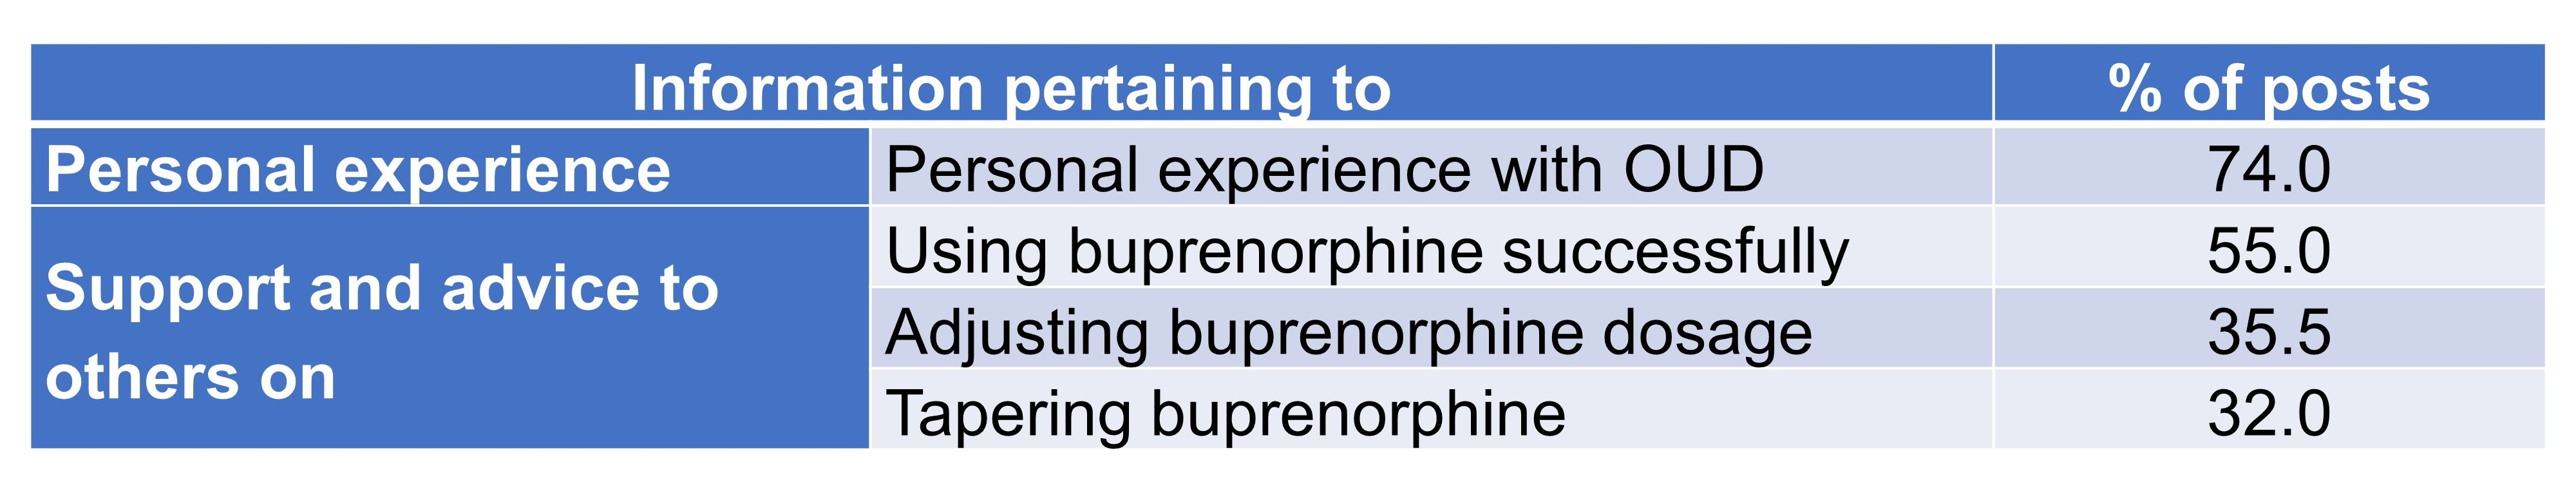 Effective Buprenorphine Use And Tapering Strategies Endorsements And Insights By People In Recovery From Opioid Use Disorder On A Reddit Forum Prelights